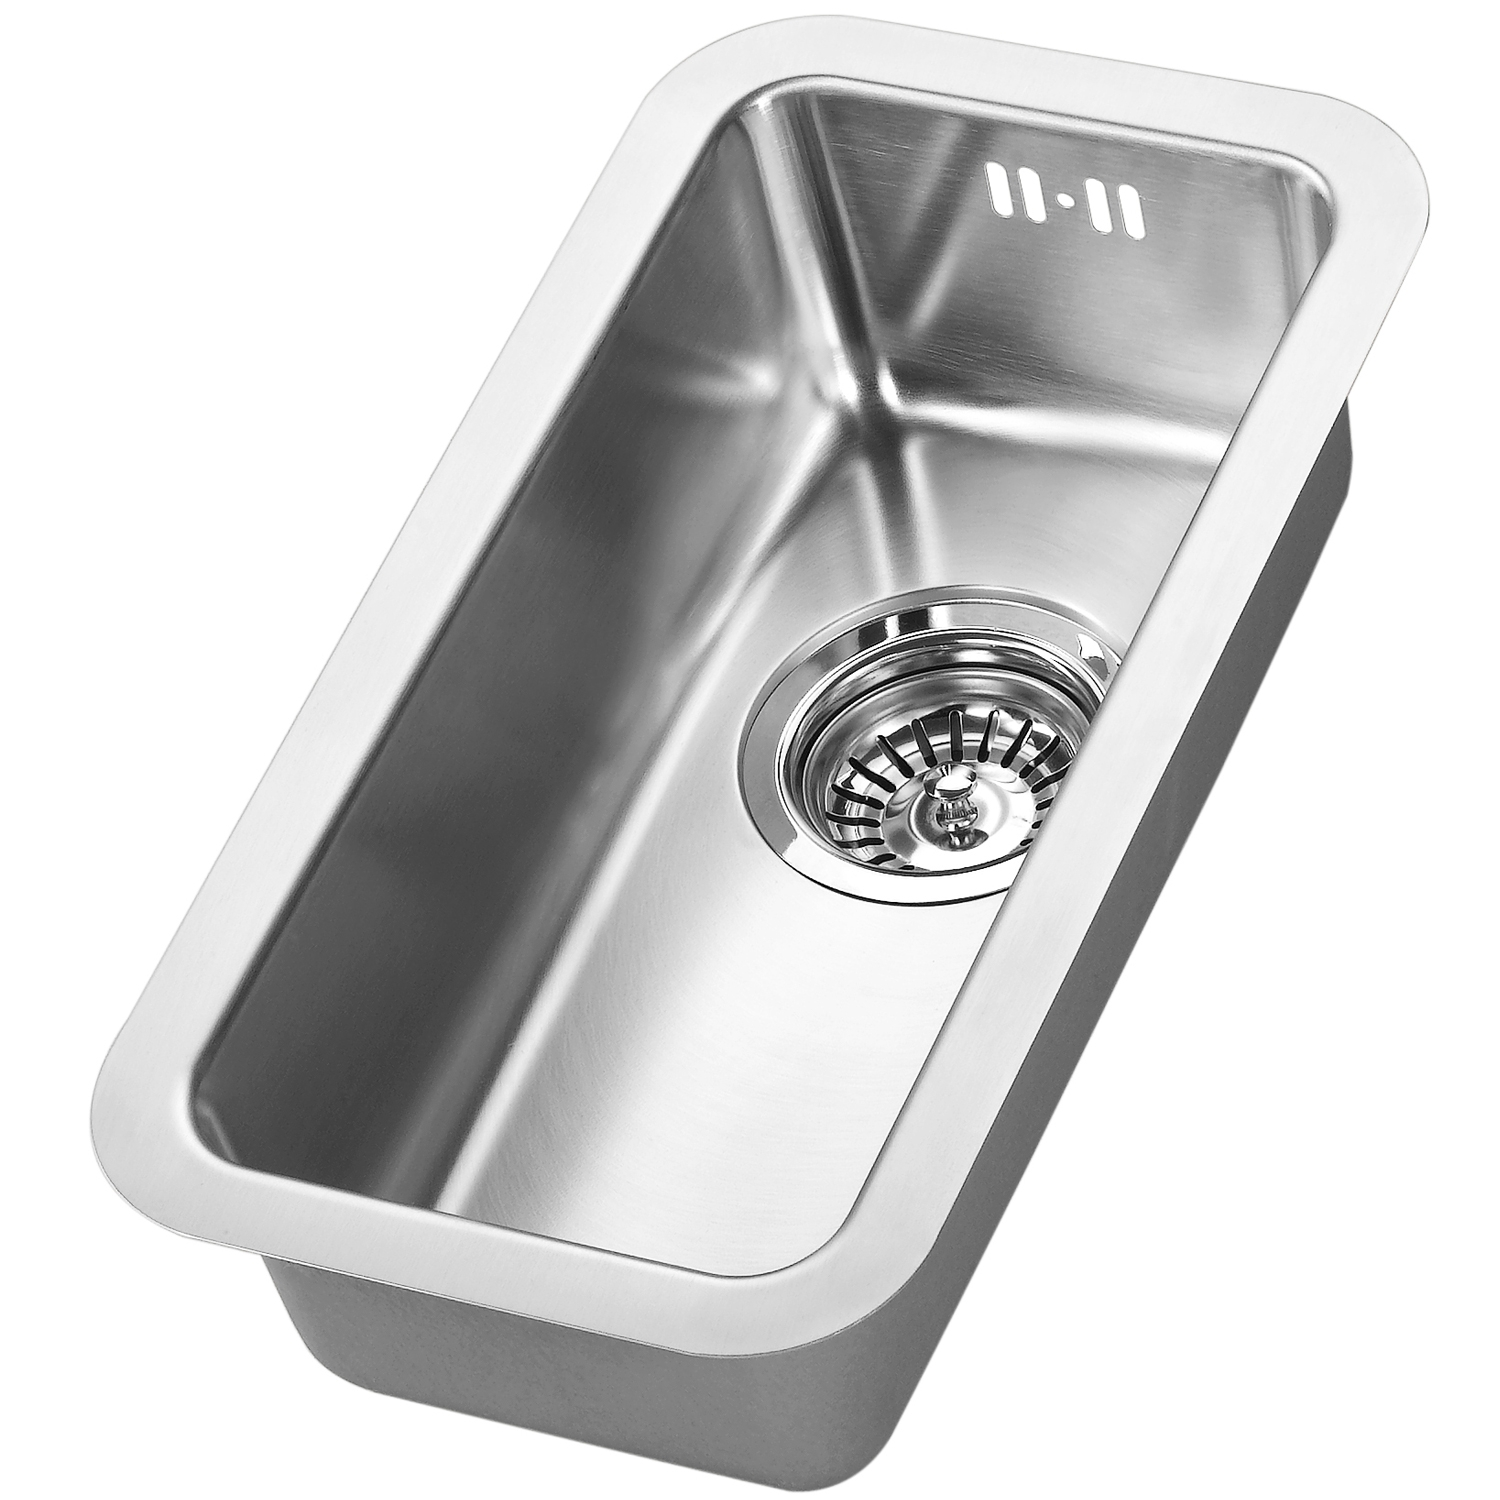 The 1810 Company Luxsouno25 180U 1.0 Bowl Kitchen Sink - Stainless Steel